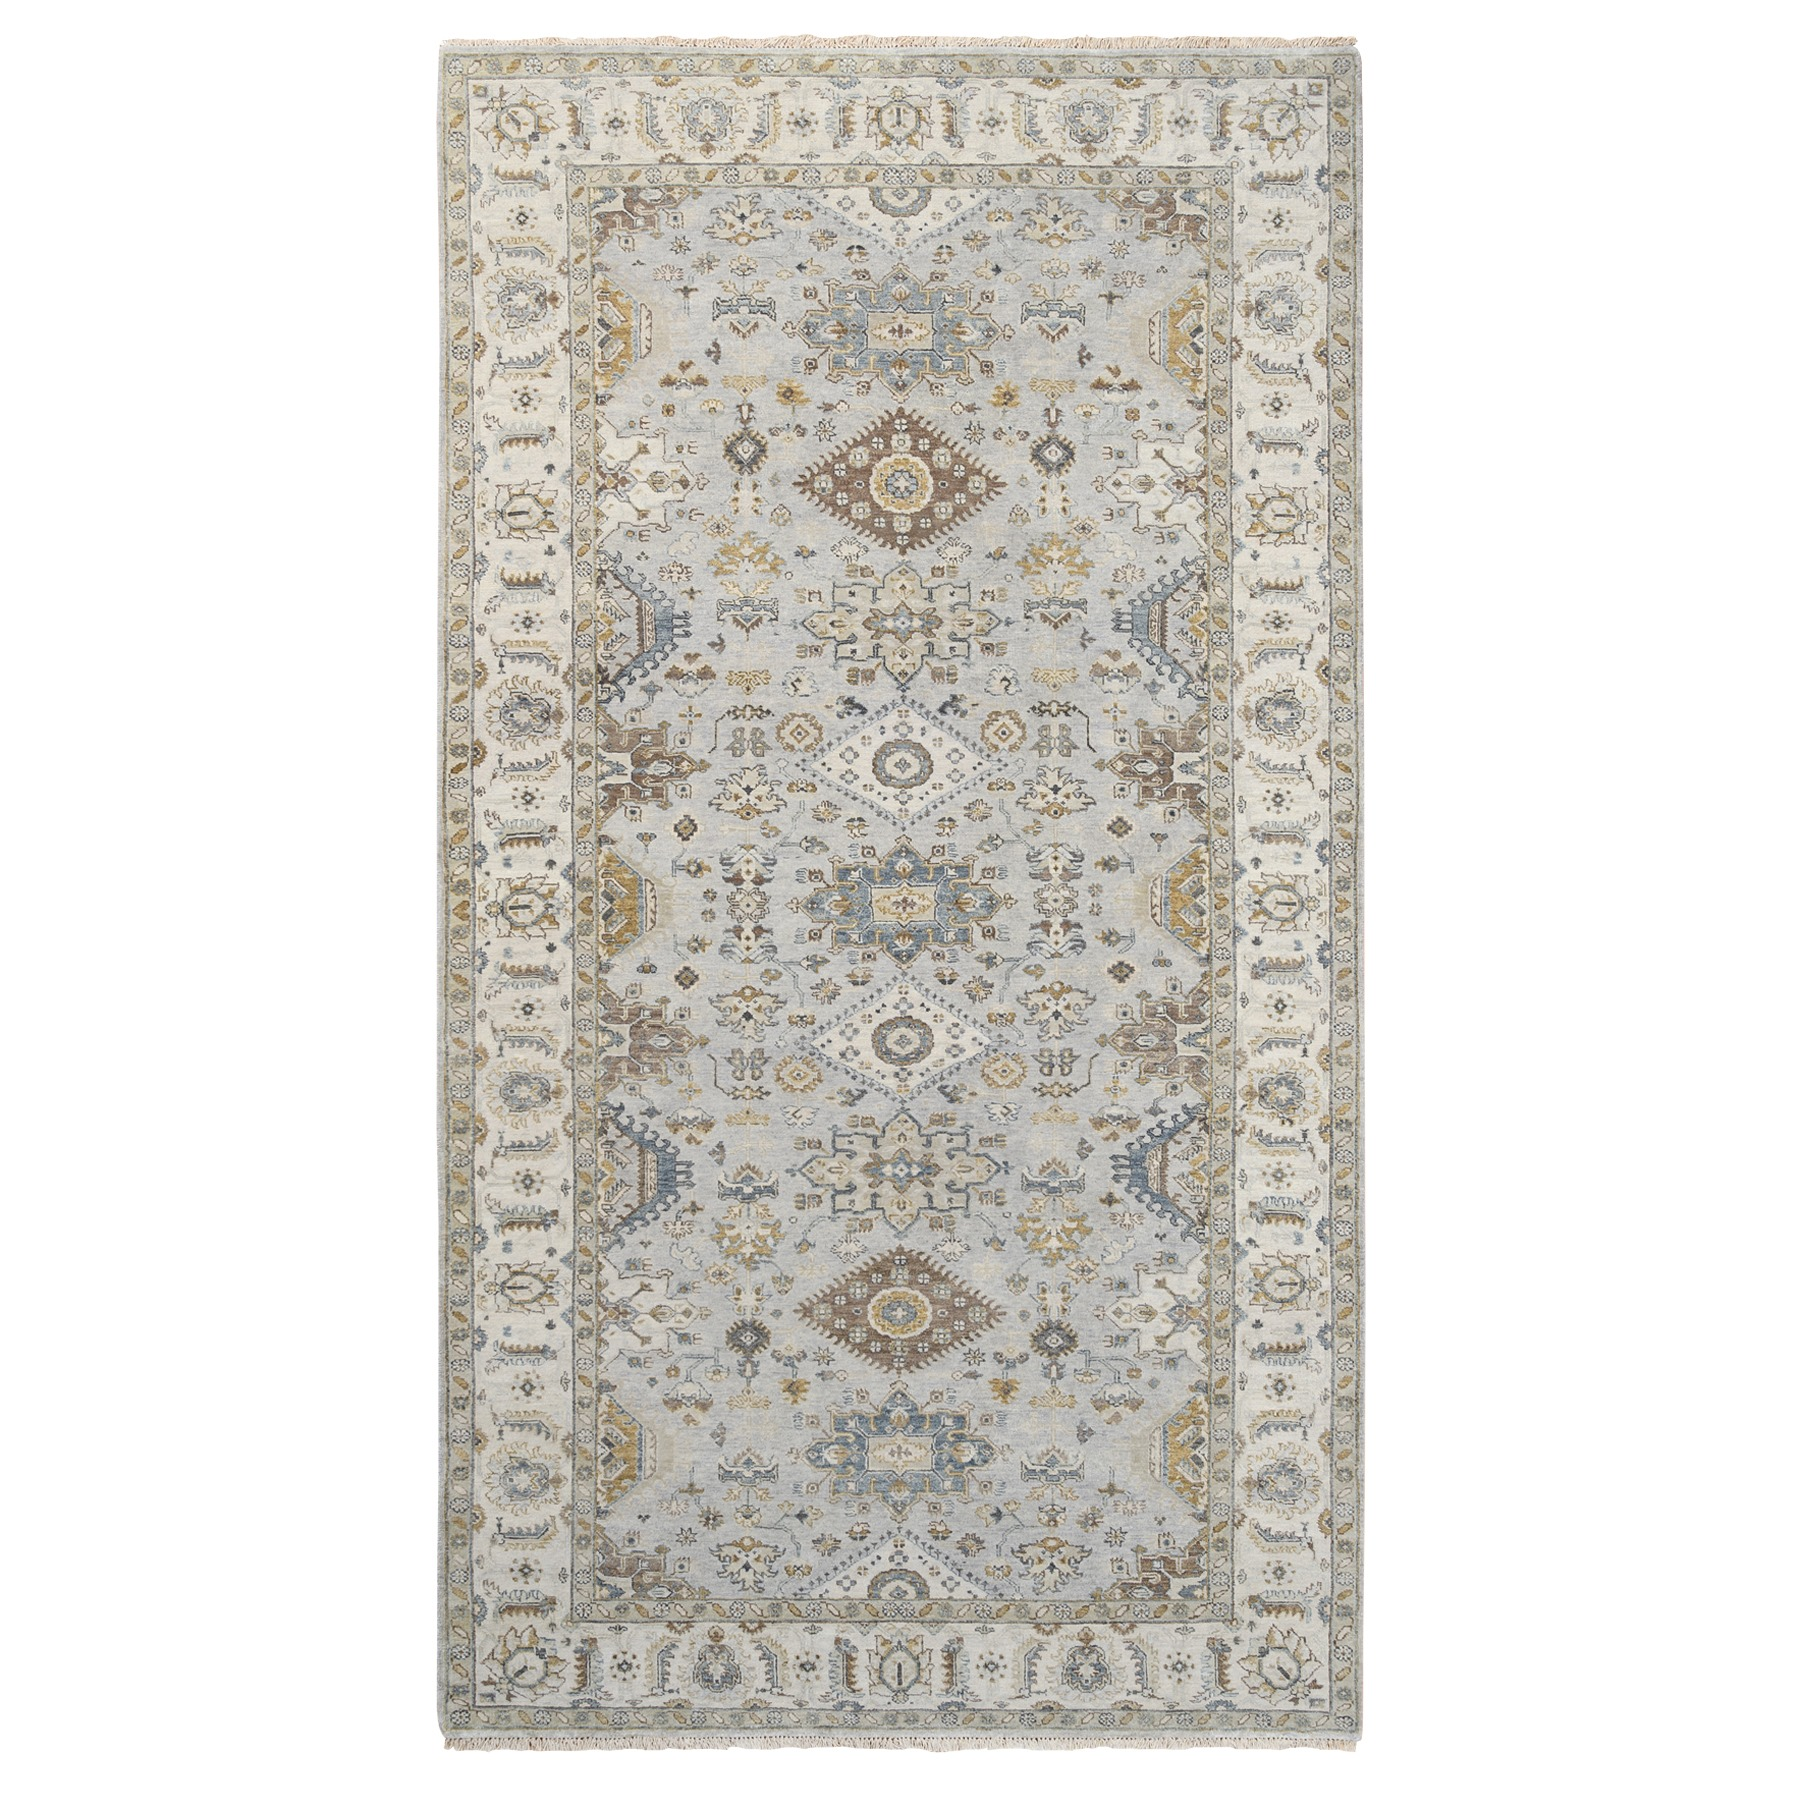 Serapi Heriz and Bakhshayesh Collection Hand Knotted Grey Rug No: 1124272